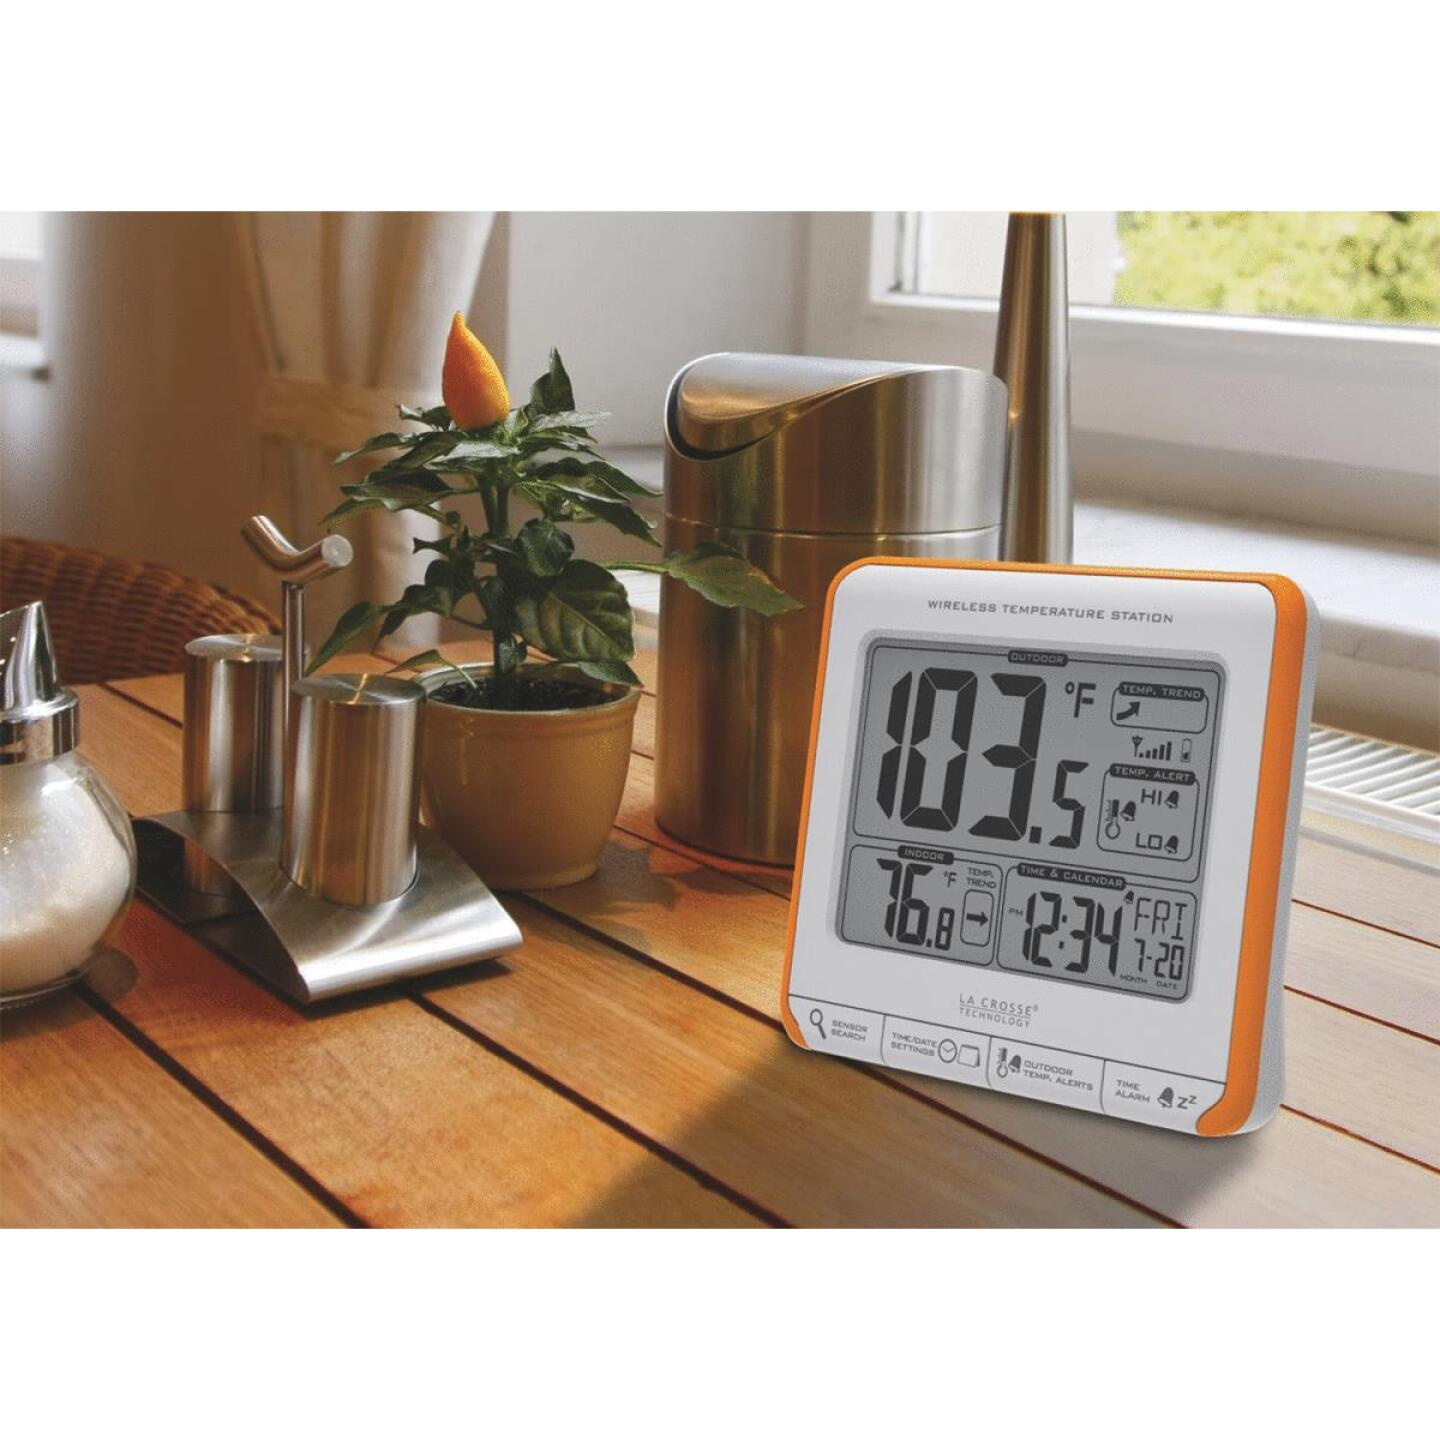 La Crosse Technology Wireless Temperature Weather Station Image 3